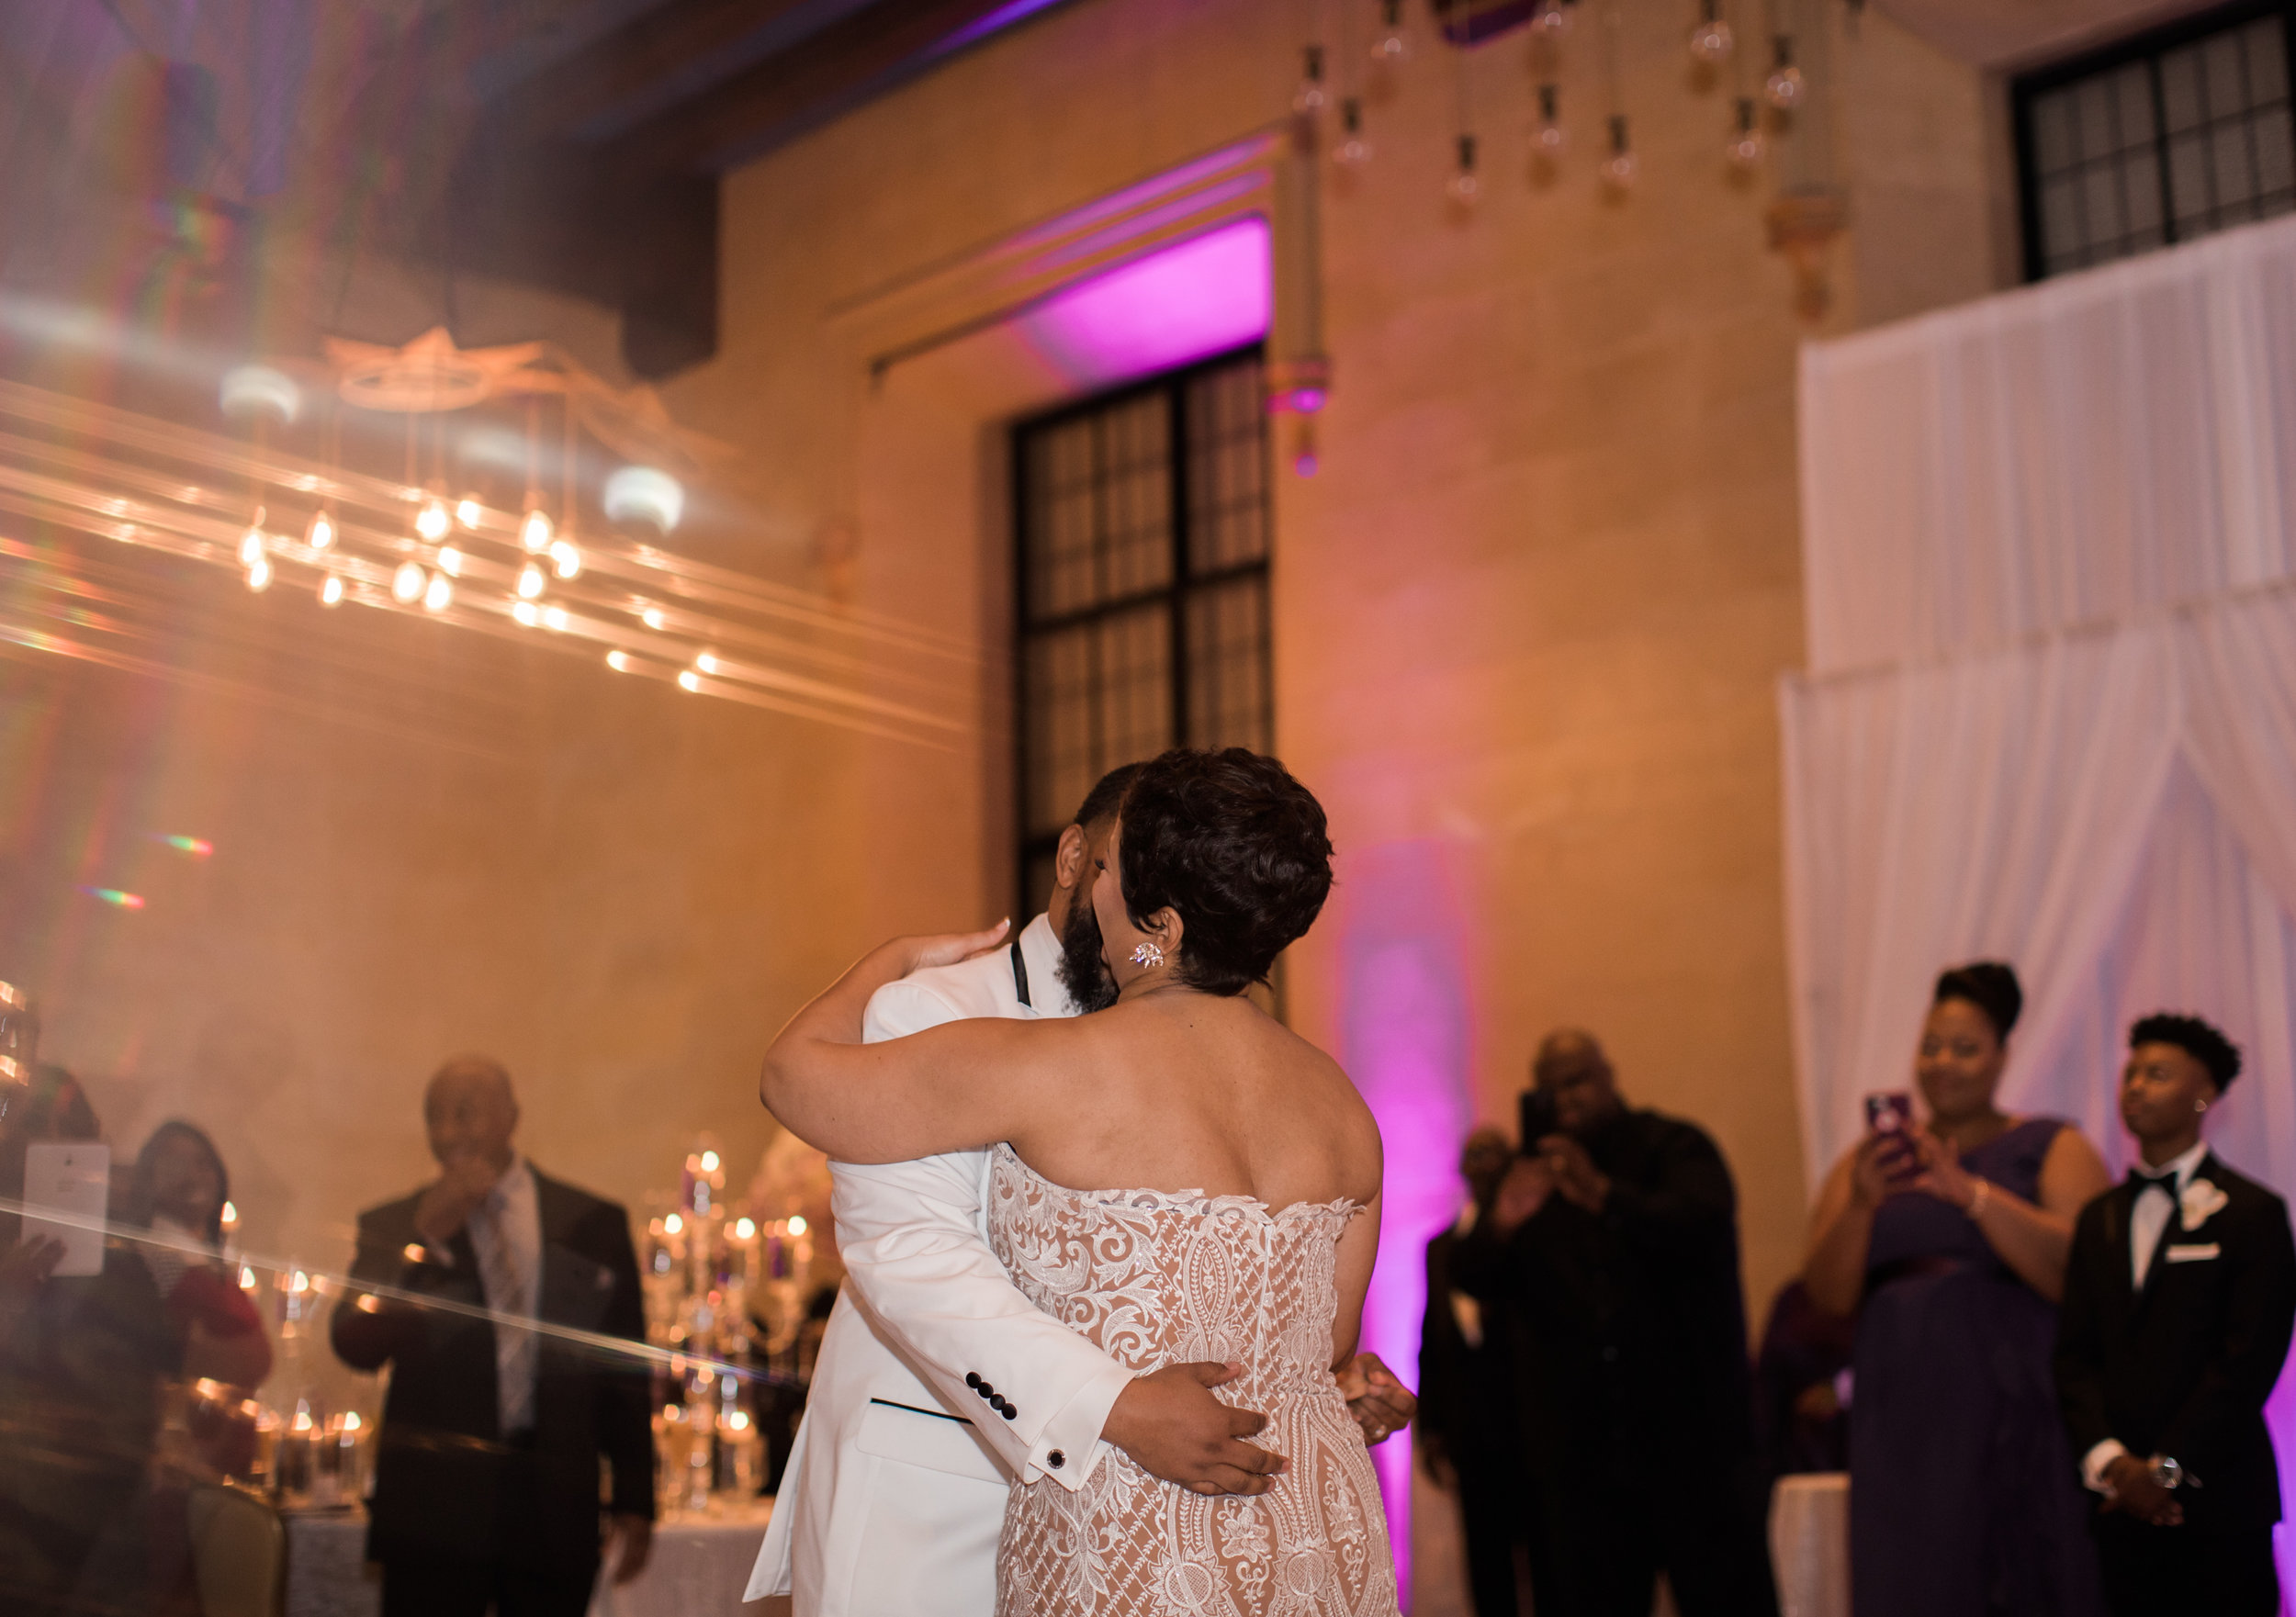 Best Classic Black Bride at The Grand Baltimore Maryland Husband and Wife Wedding Photographers Megapixels Media (76 of 98).jpg